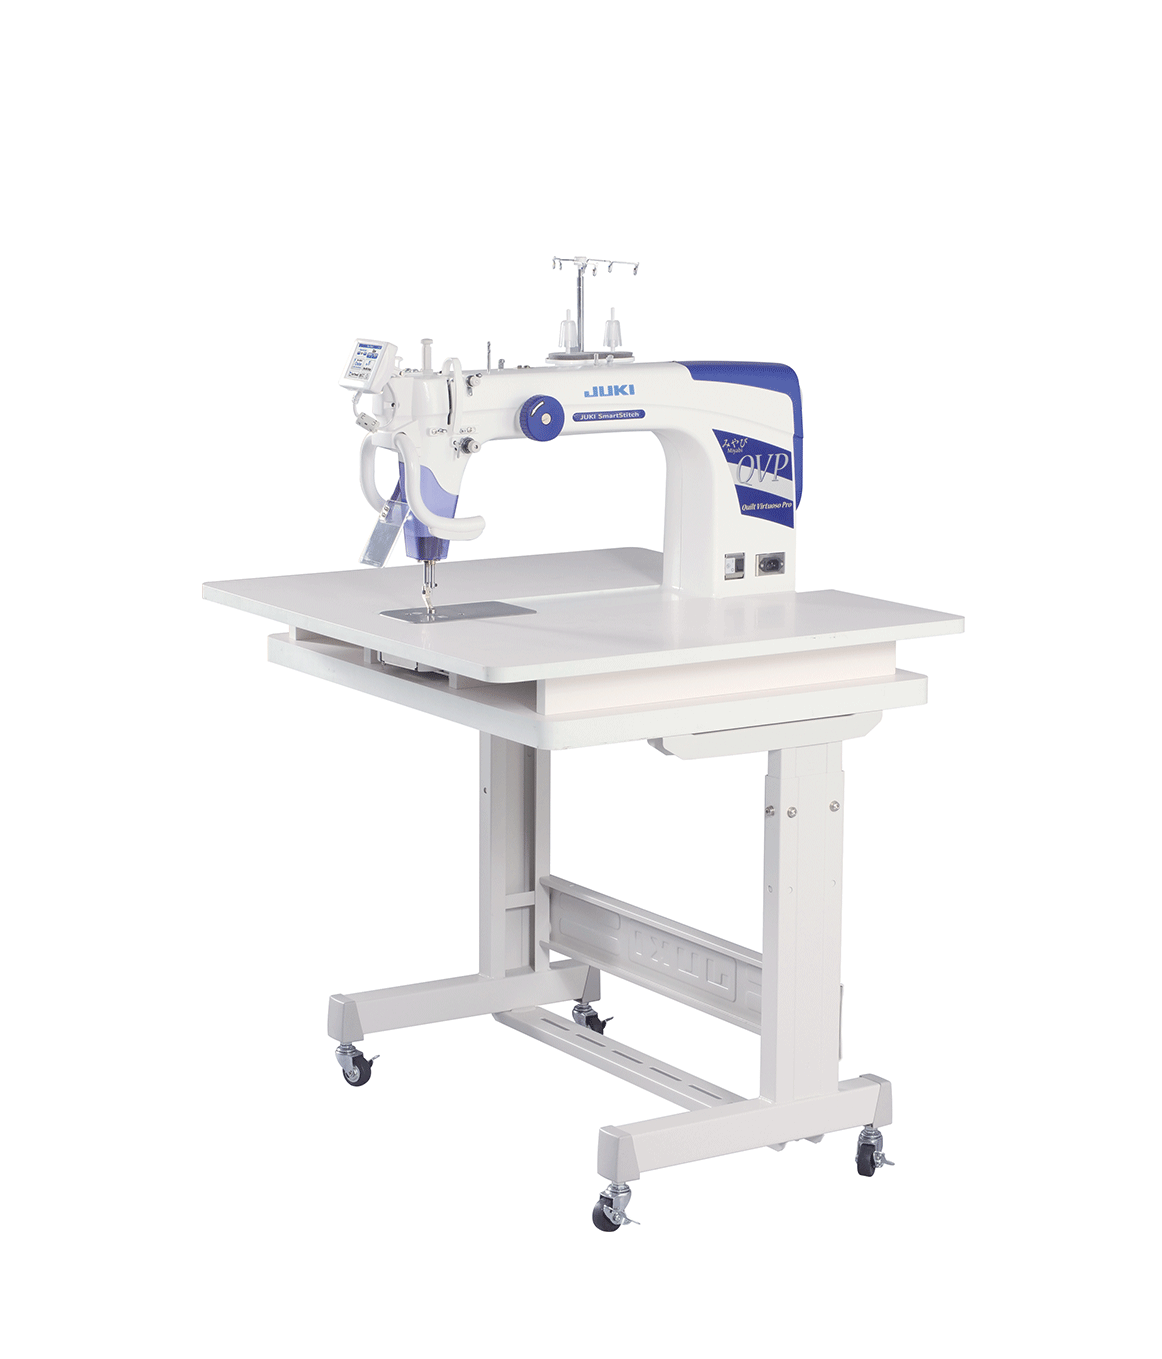 Juki Miyabi J-350 Longarm Long-arm Quilter Quilting Machine Professional Free Motion Industrial Australia Perth Western Australia Dealer Retail Buy Online Applique Stipple Raw Edge Stitch Sewing Sweet 16 Grace Frame Table Stand Shipping Japan